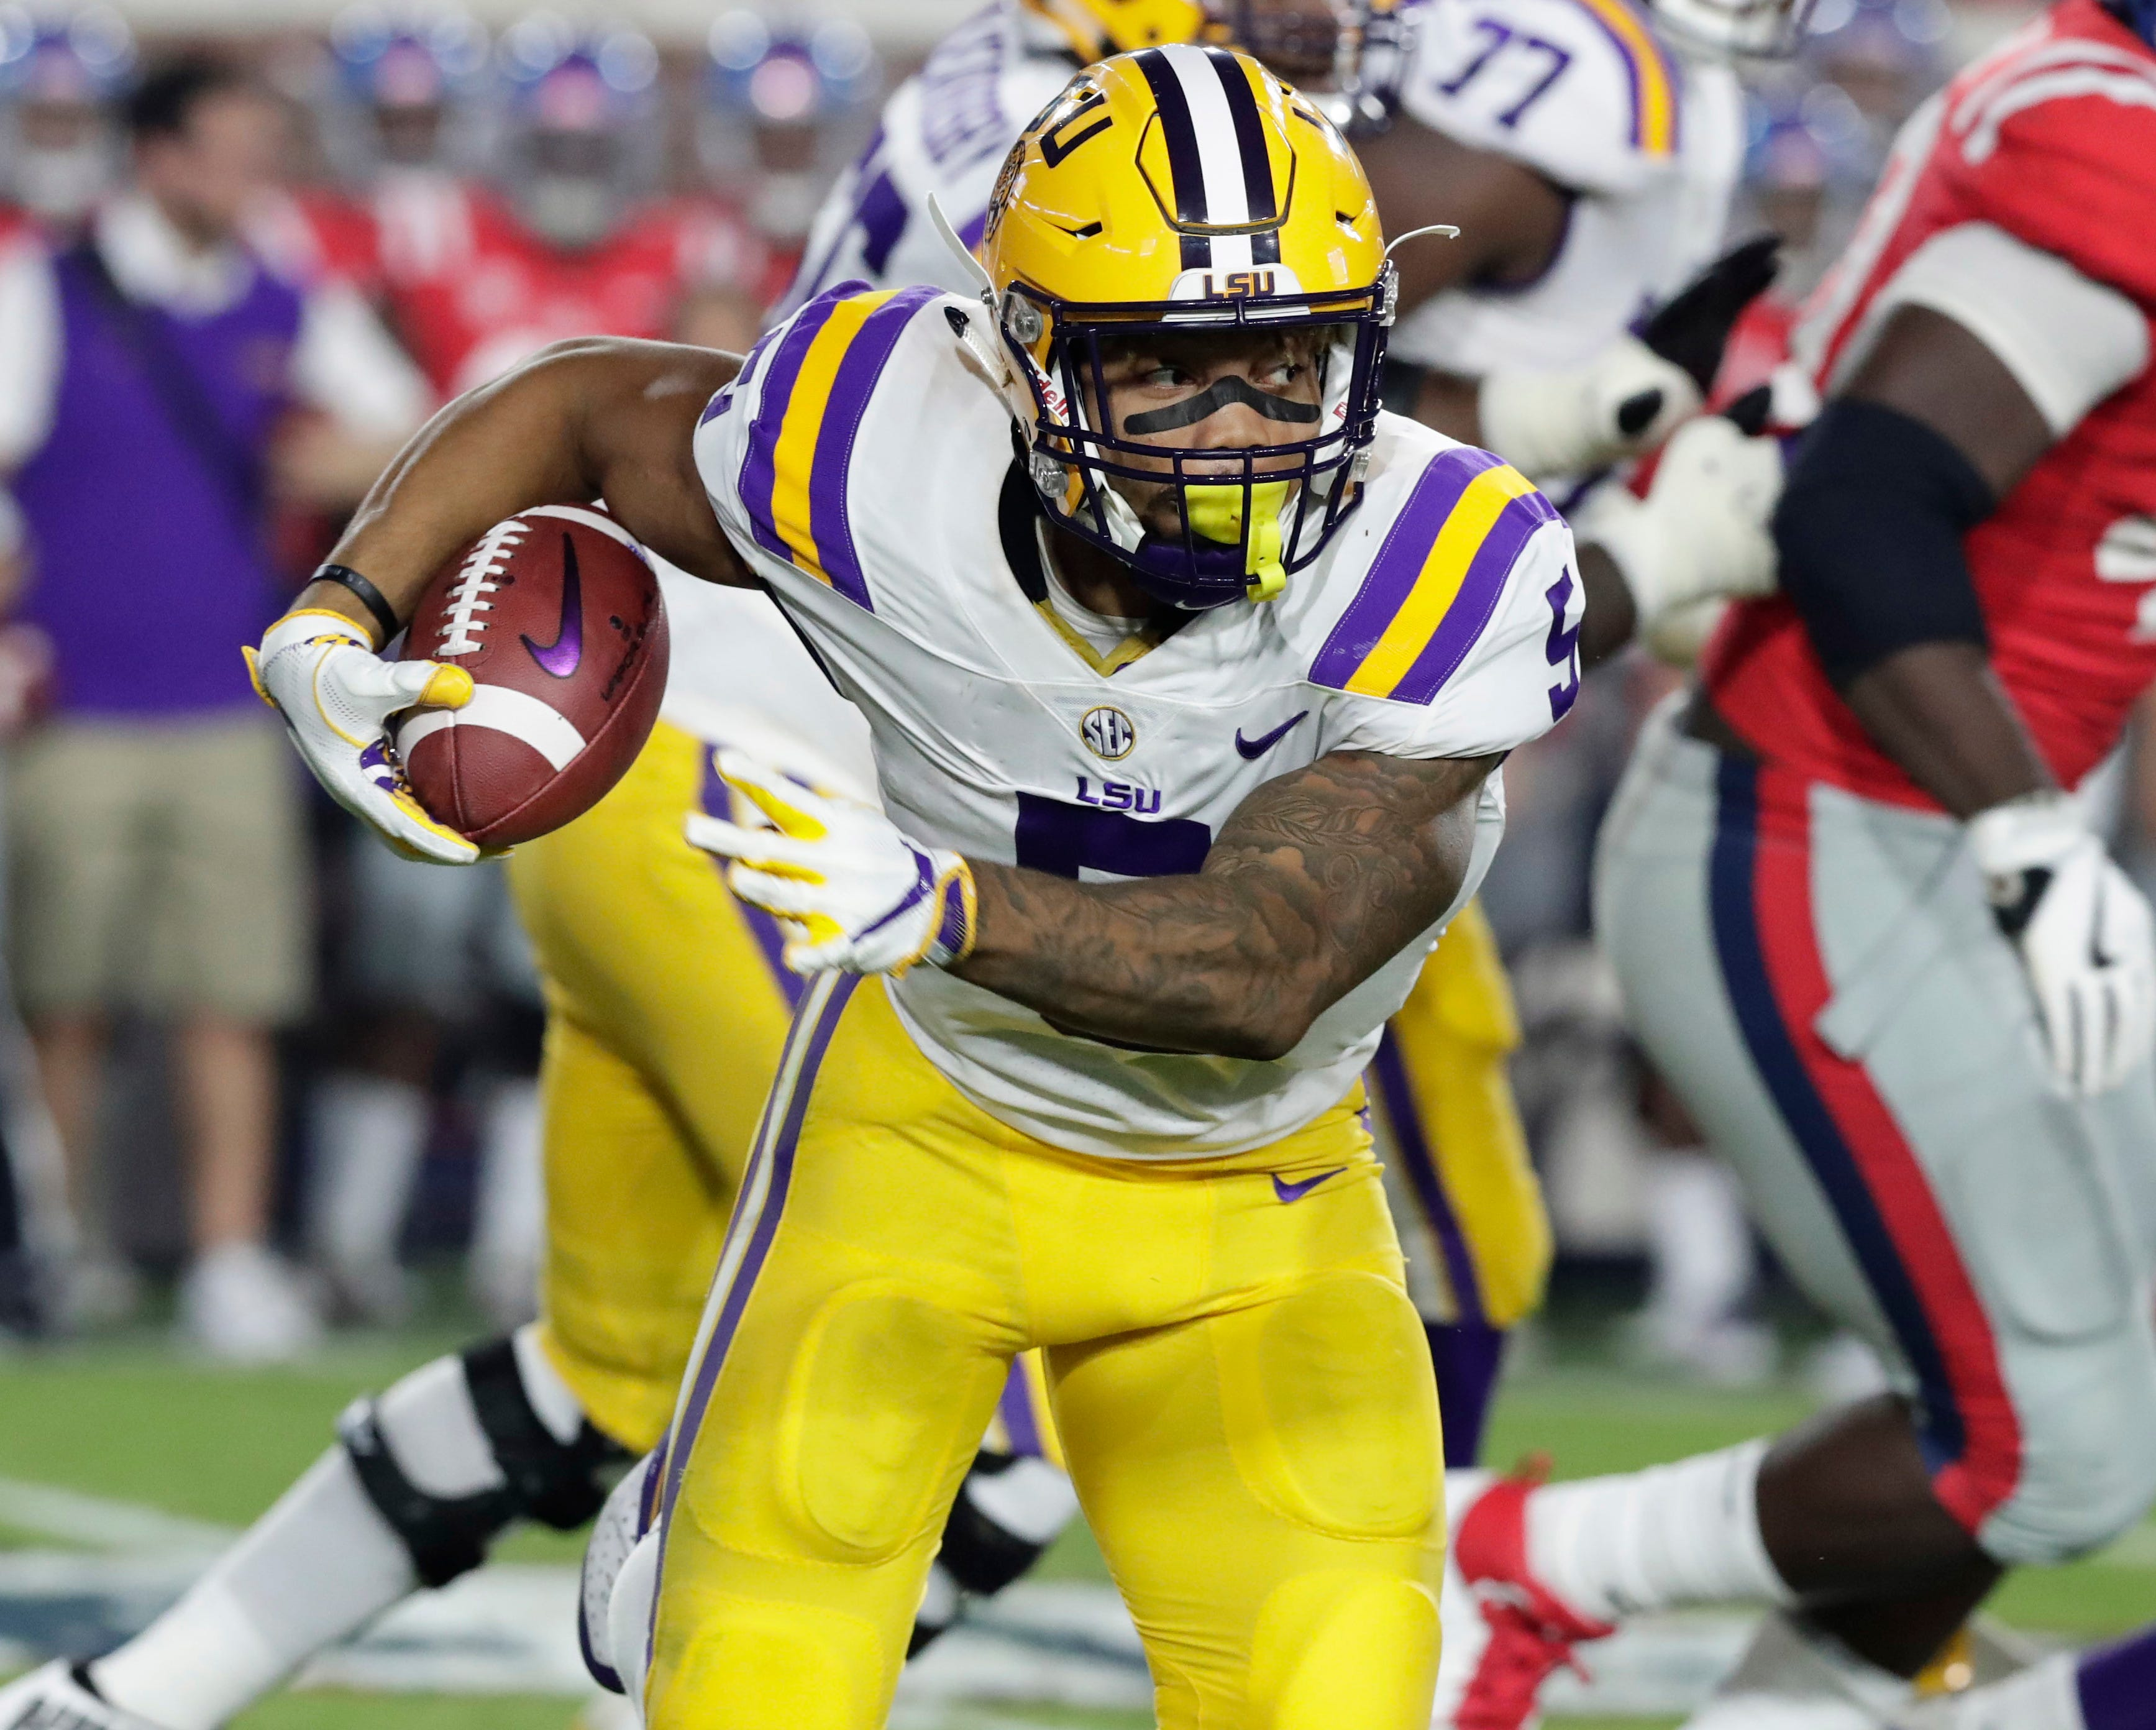 In this 2017 file photo, LSU running back Derrius Guice plays during an NCAA college football game in Oxford, Miss.